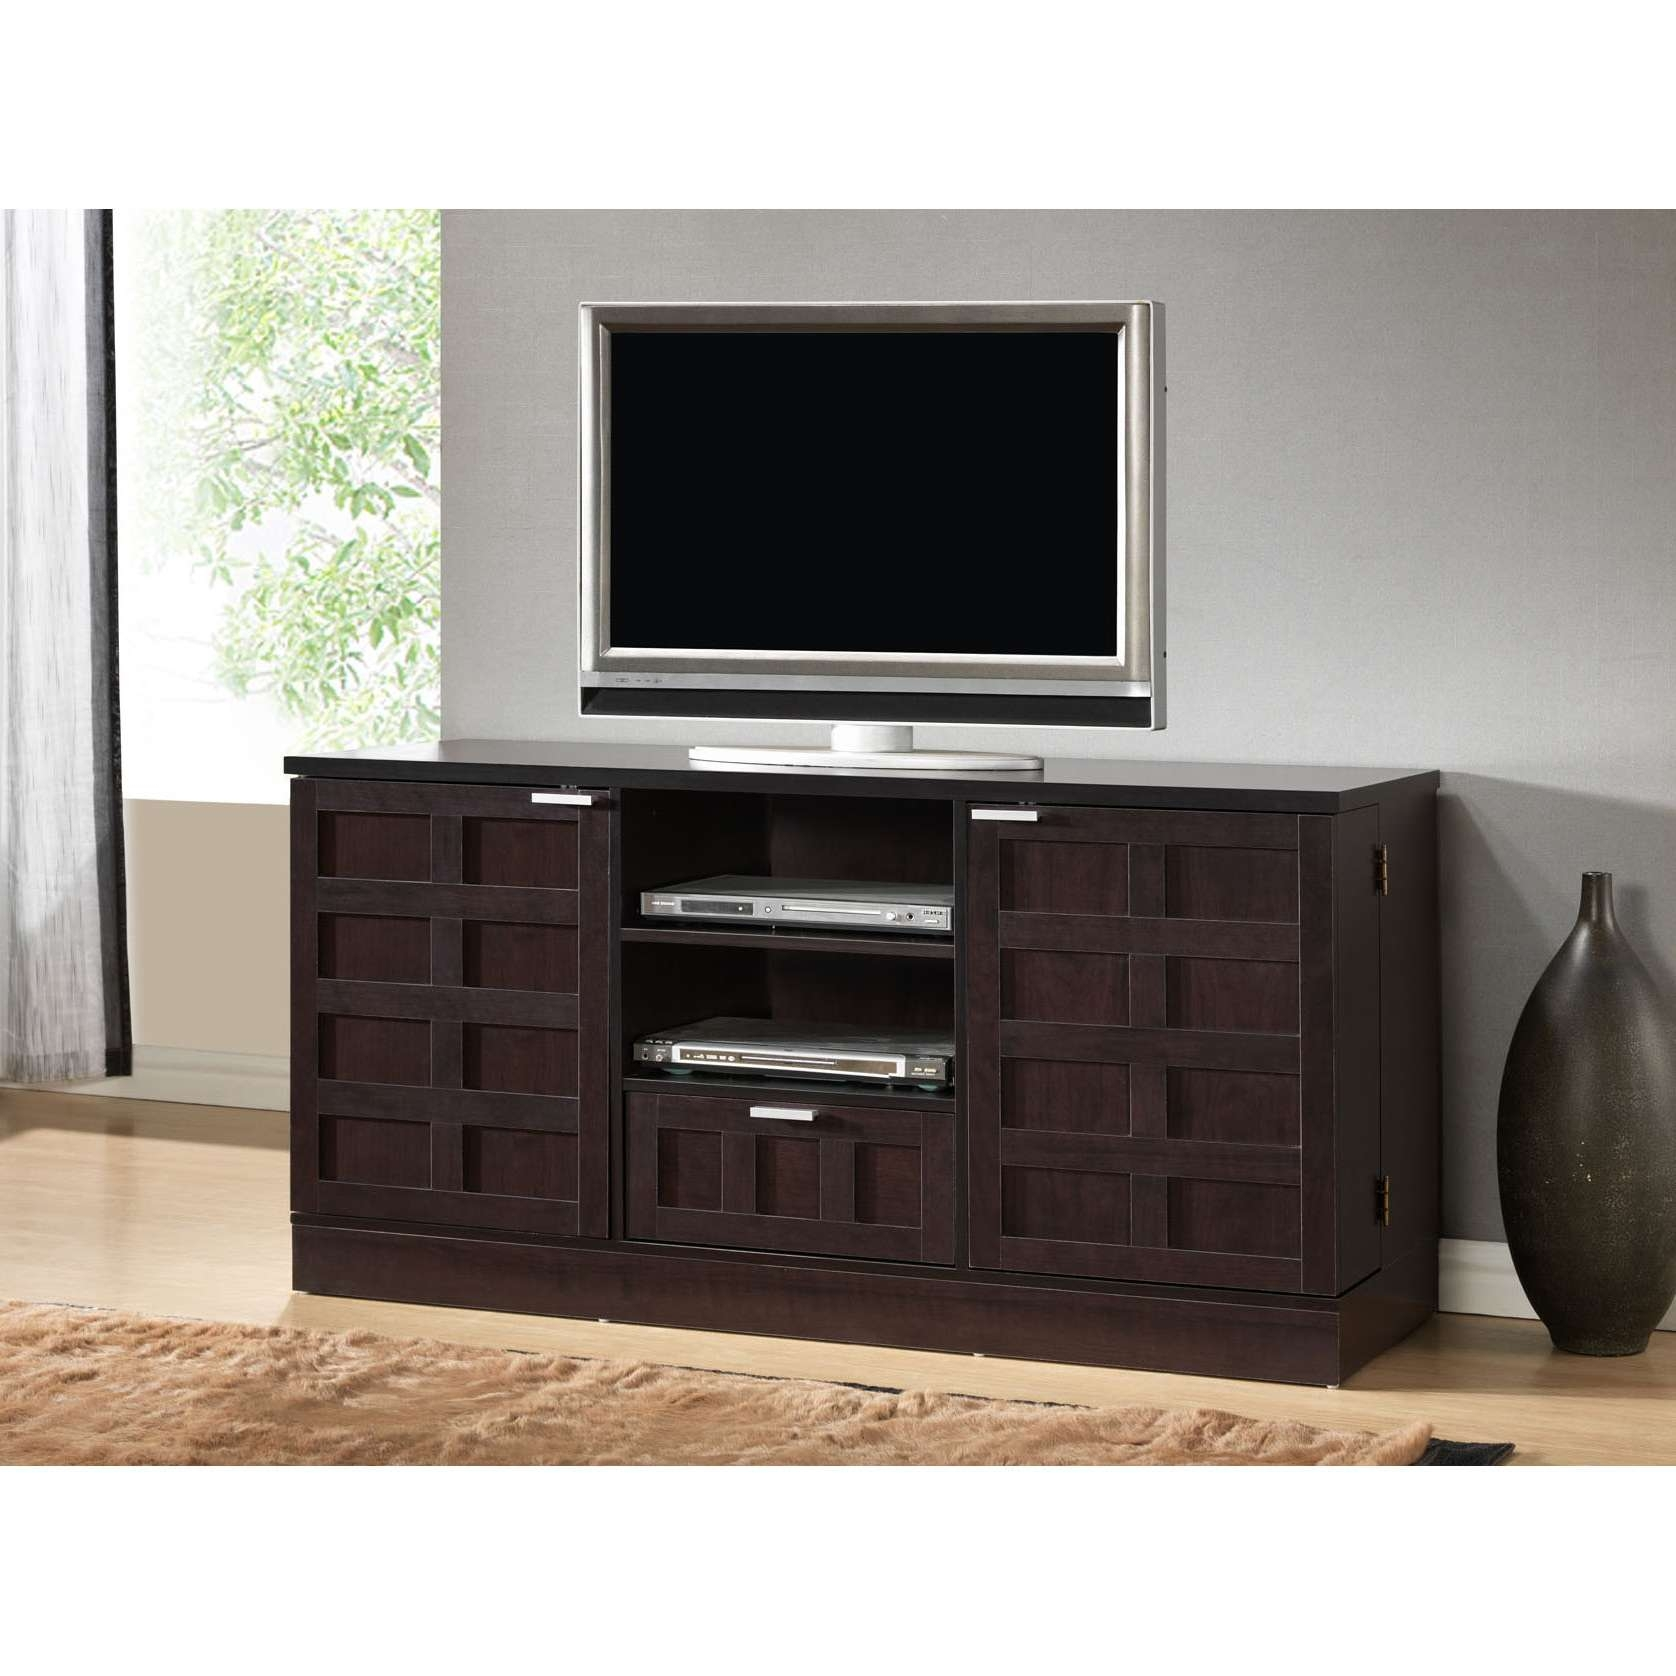 Black Wooden Tv Cabinet With Doors And Racks Also Single Drawer On Regarding Tv Cabinets With Drawers (View 5 of 20)